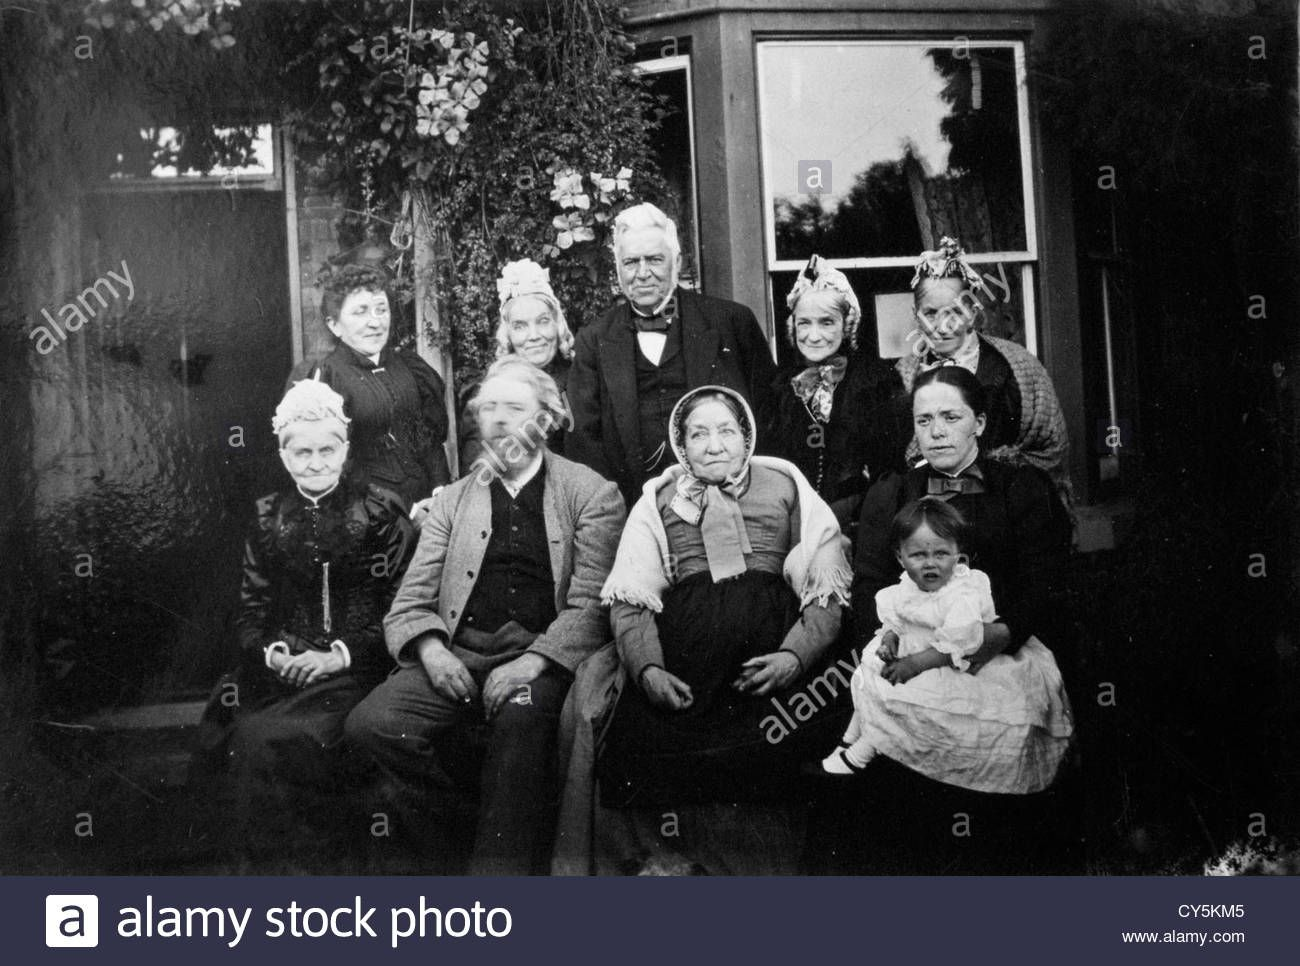 victorian-vintage-family-group-photographs-1890s-homer-sykes-relatives-CY5KM5.jpg (1300×966)